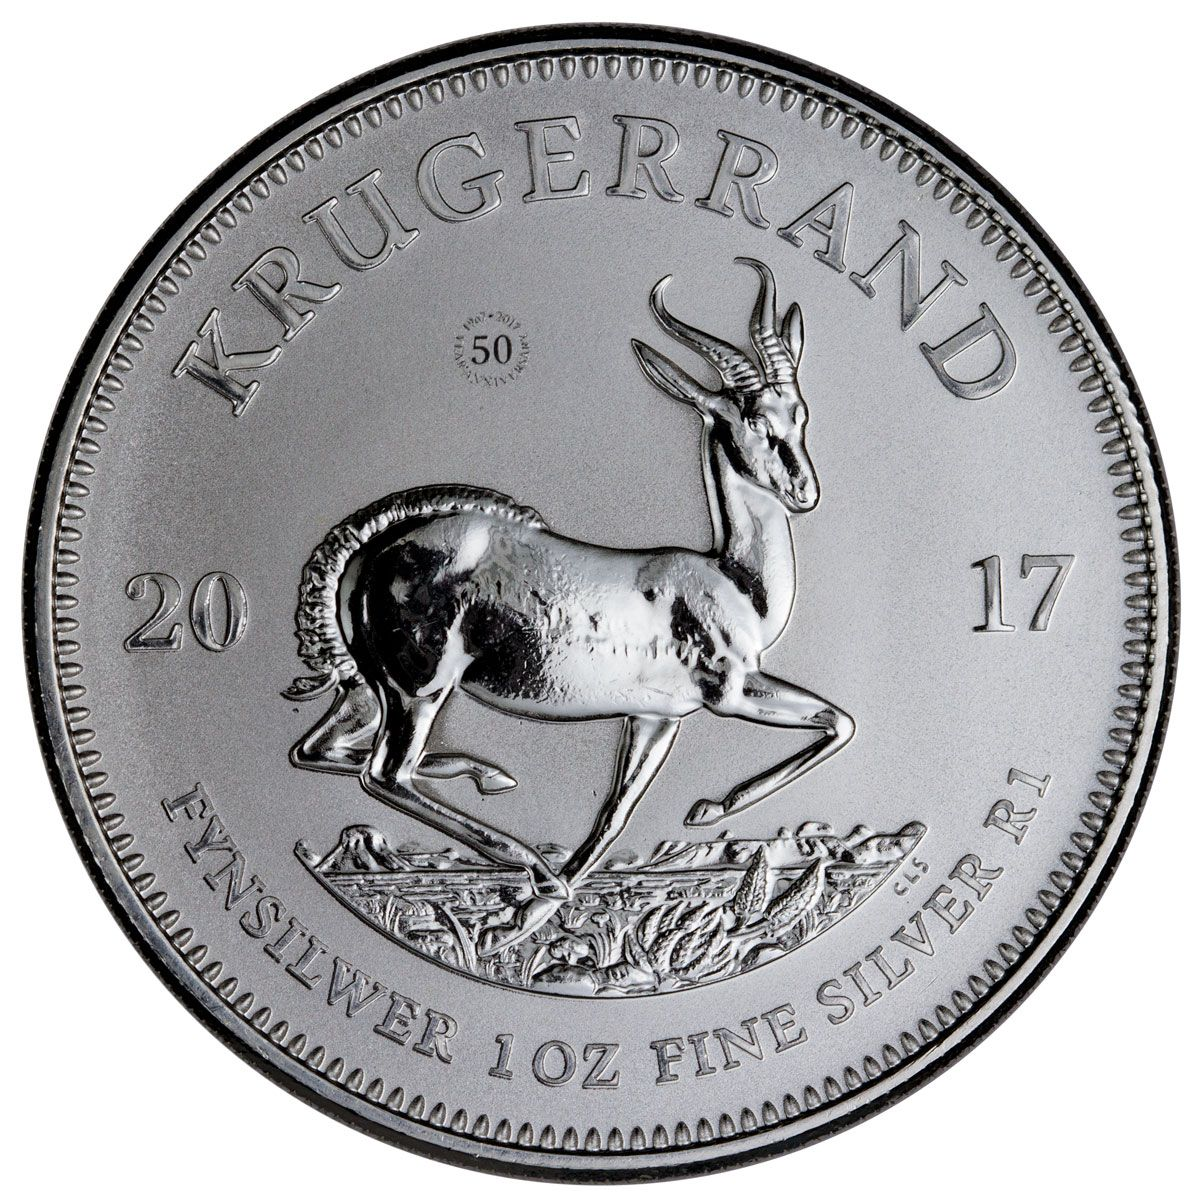 2017 South Africa 1 Oz Silver Krugerrand Gem Premium Uncirculated Silver Krugerrand